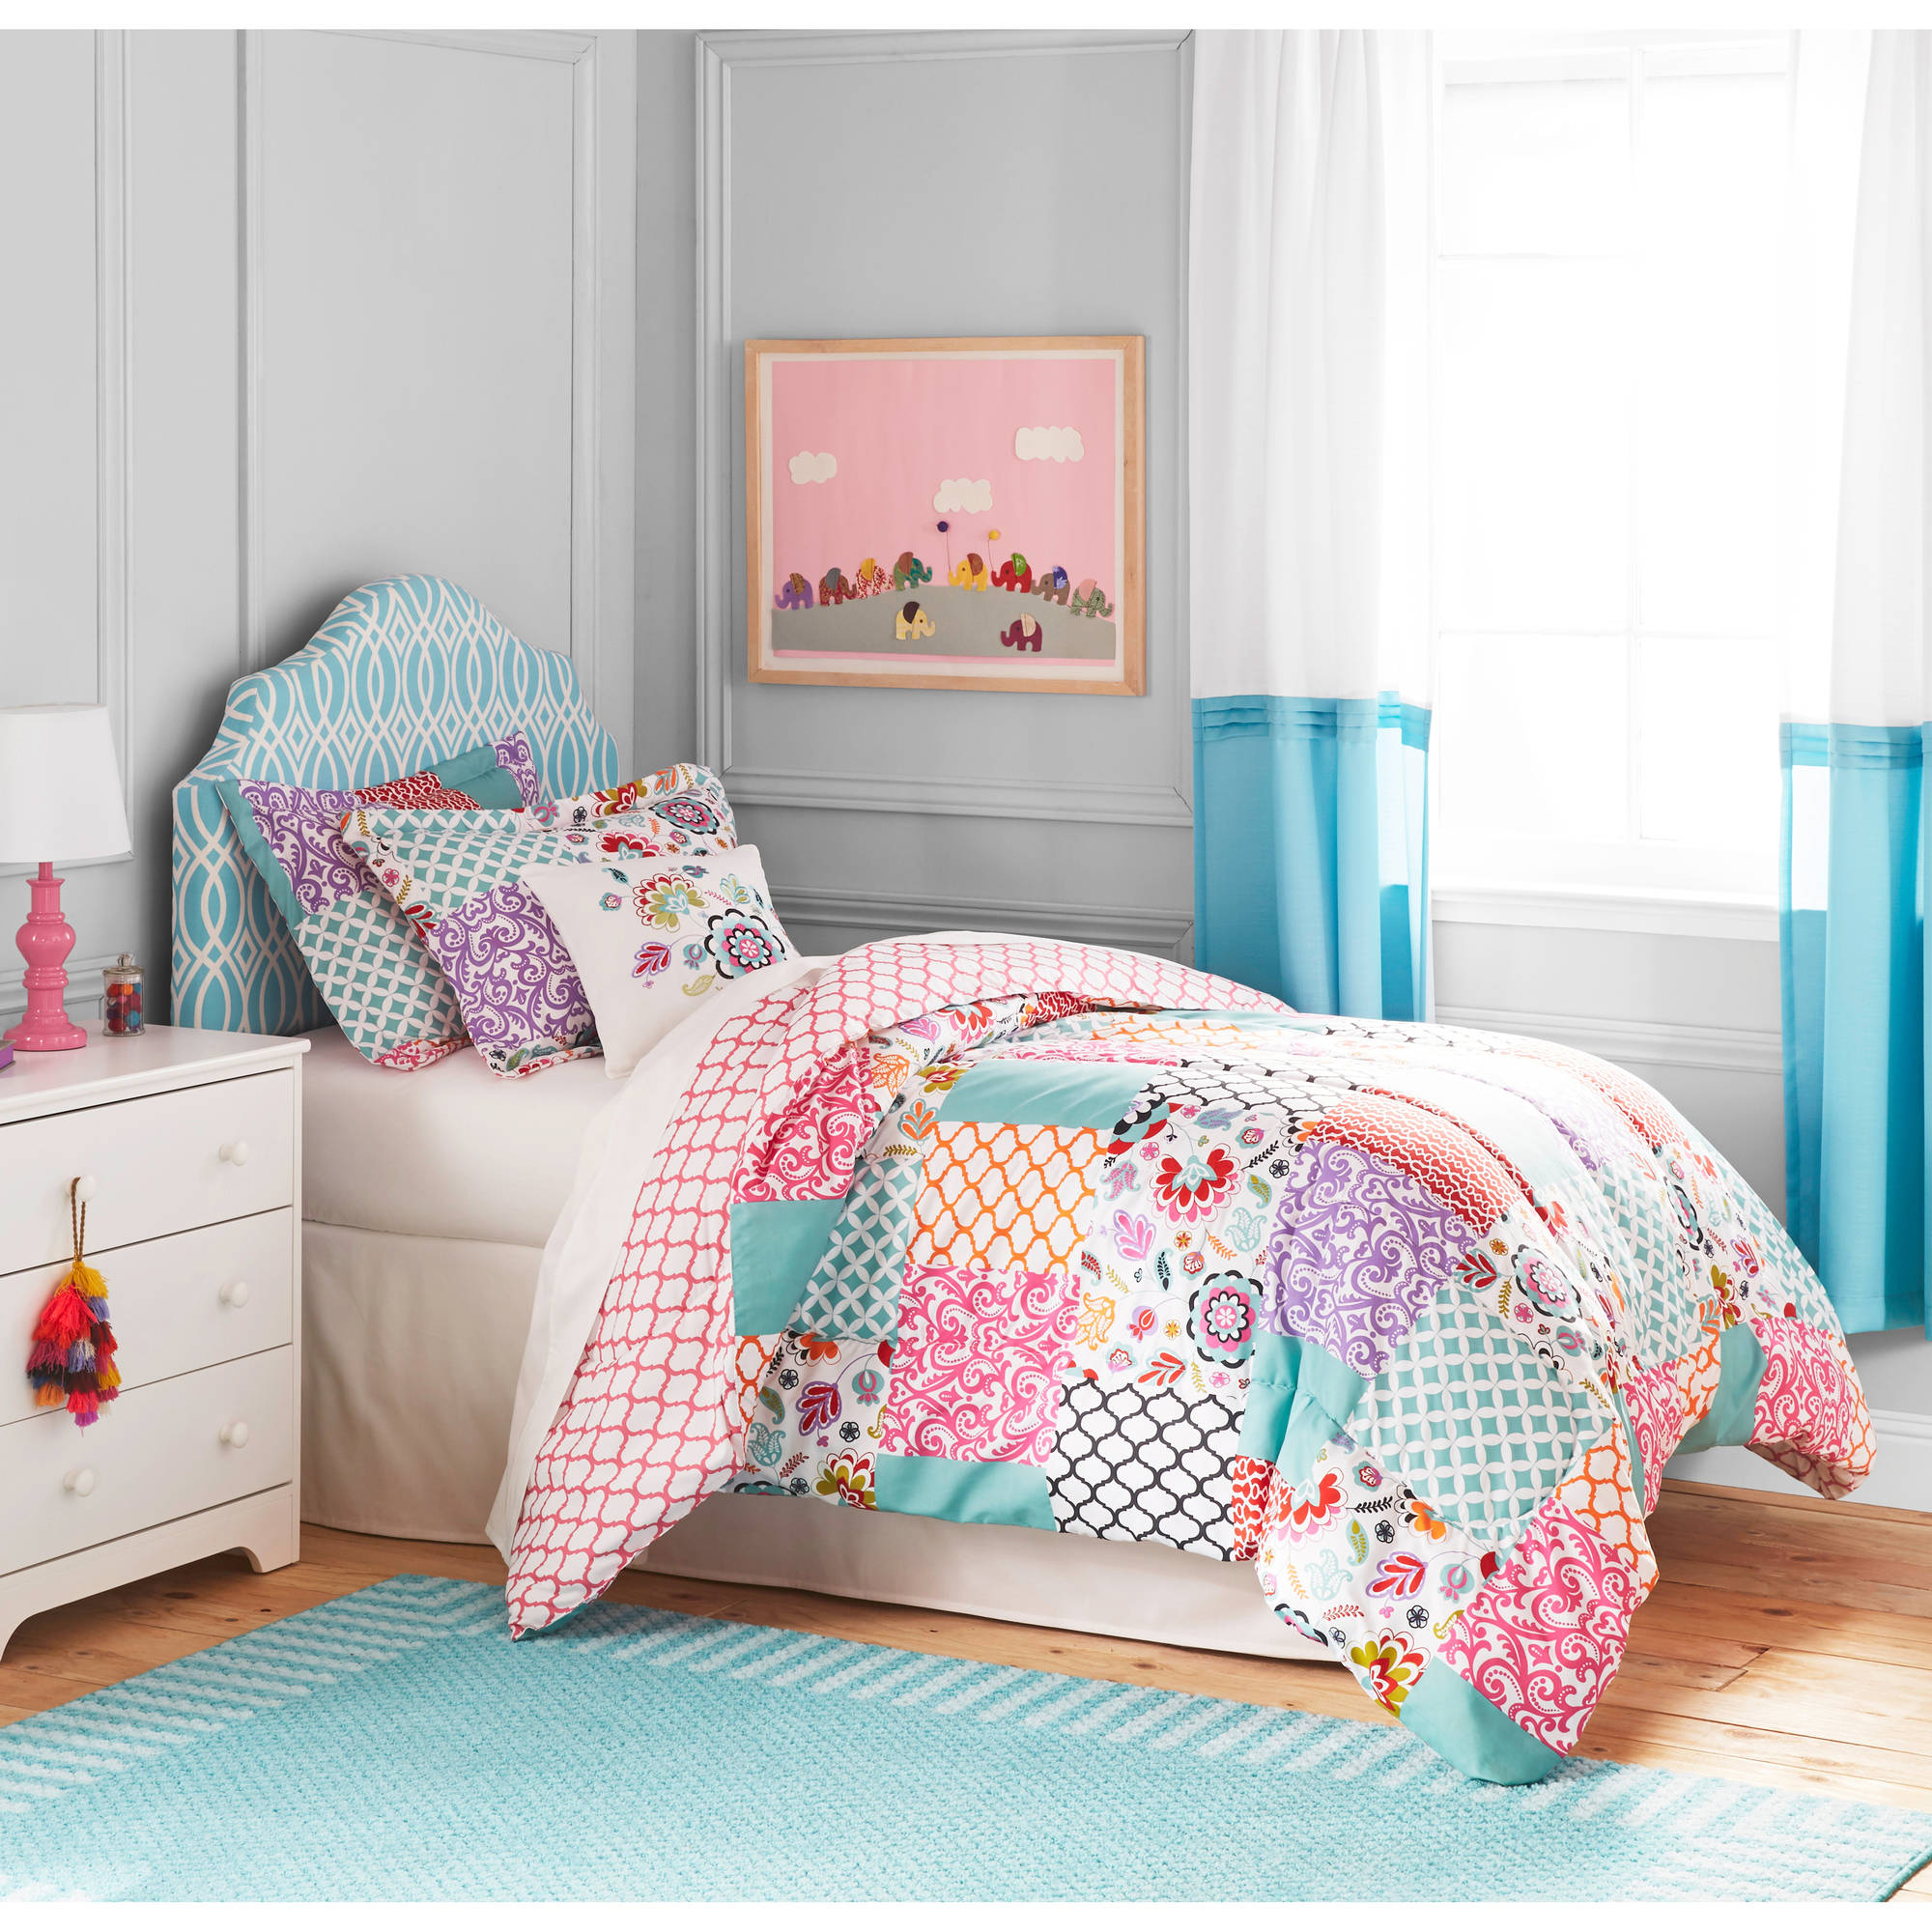 Better Homes And Gardens Kids BOHO Patchwork Bedding Comforter Set    Walmart.com